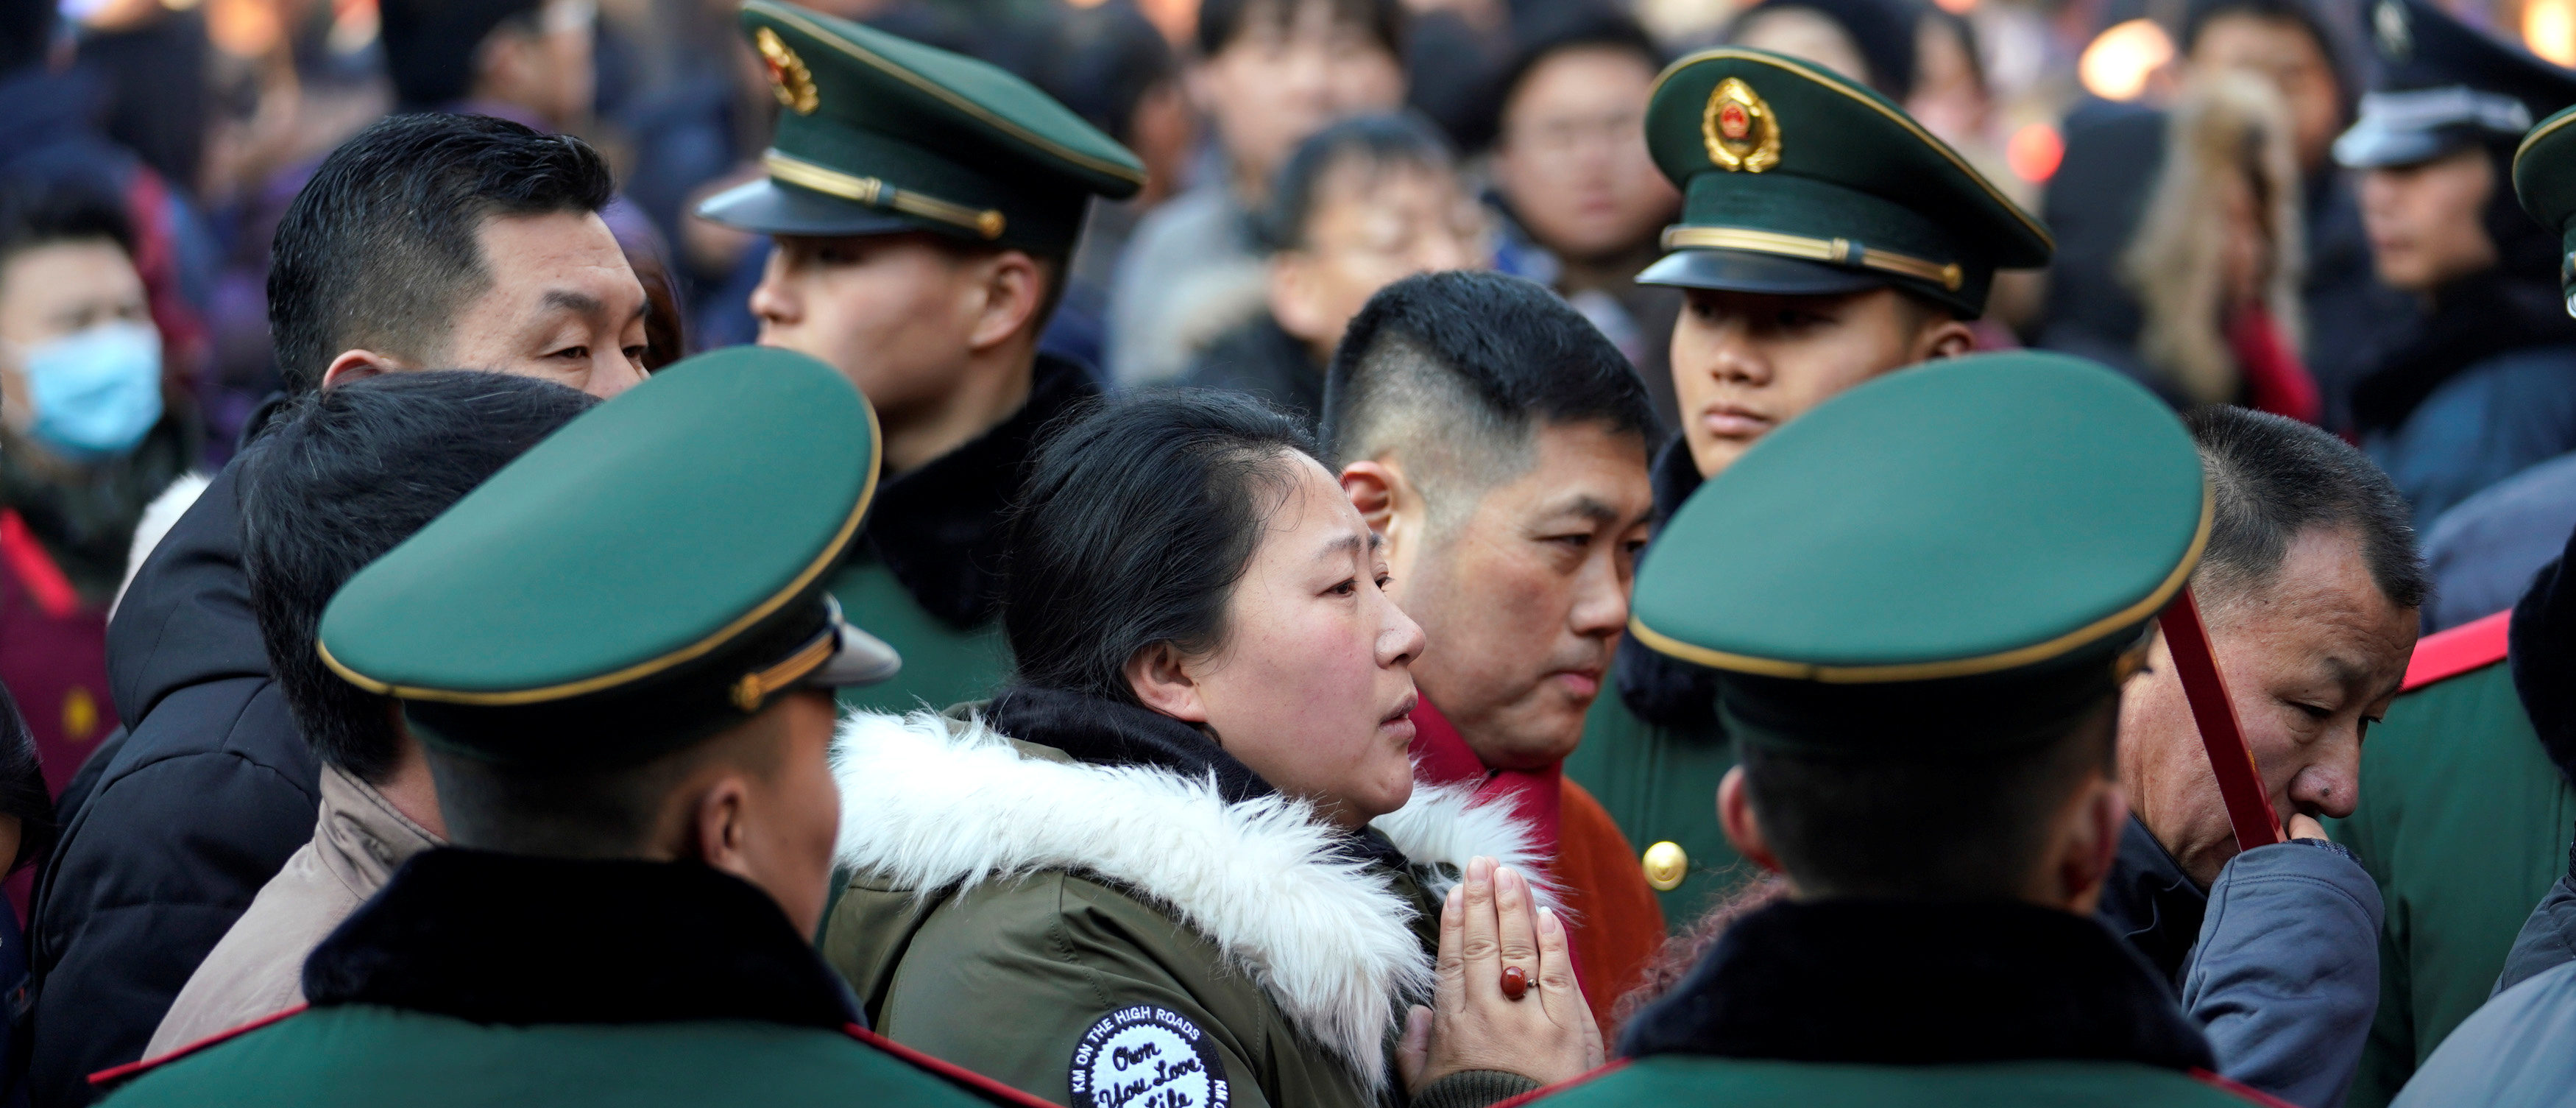 People crowd through paramilitary police officers to enter a hall to pray for good fortune at Lama Temple on the first day of the Year of the Dog in Beijing, China February 16, 2018. REUTERS/Jason Lee - RC1176280890